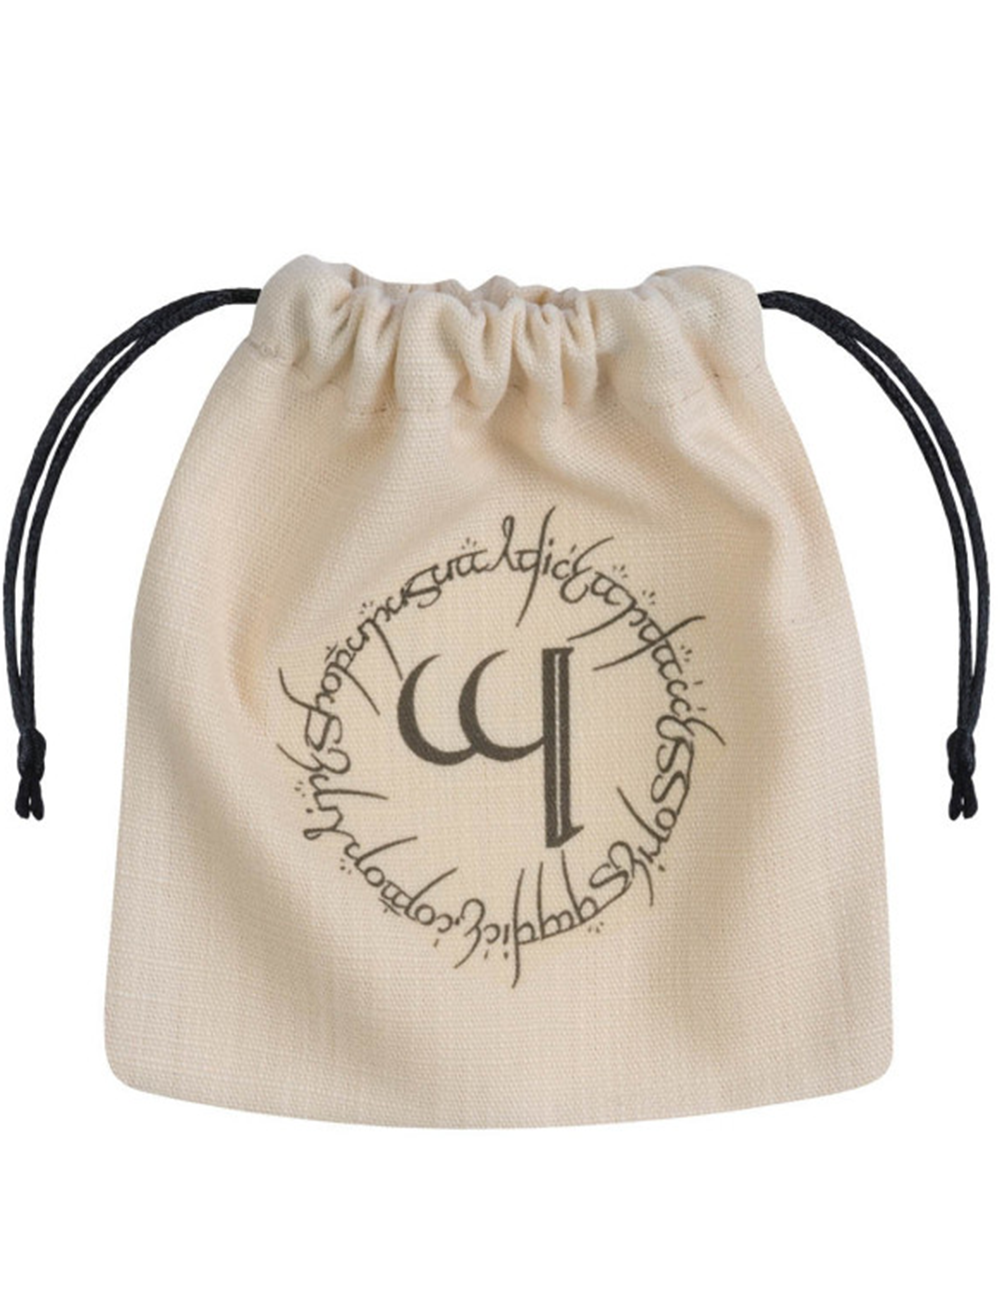 Dice Accessories: Elvish Beige & black Dice Bag